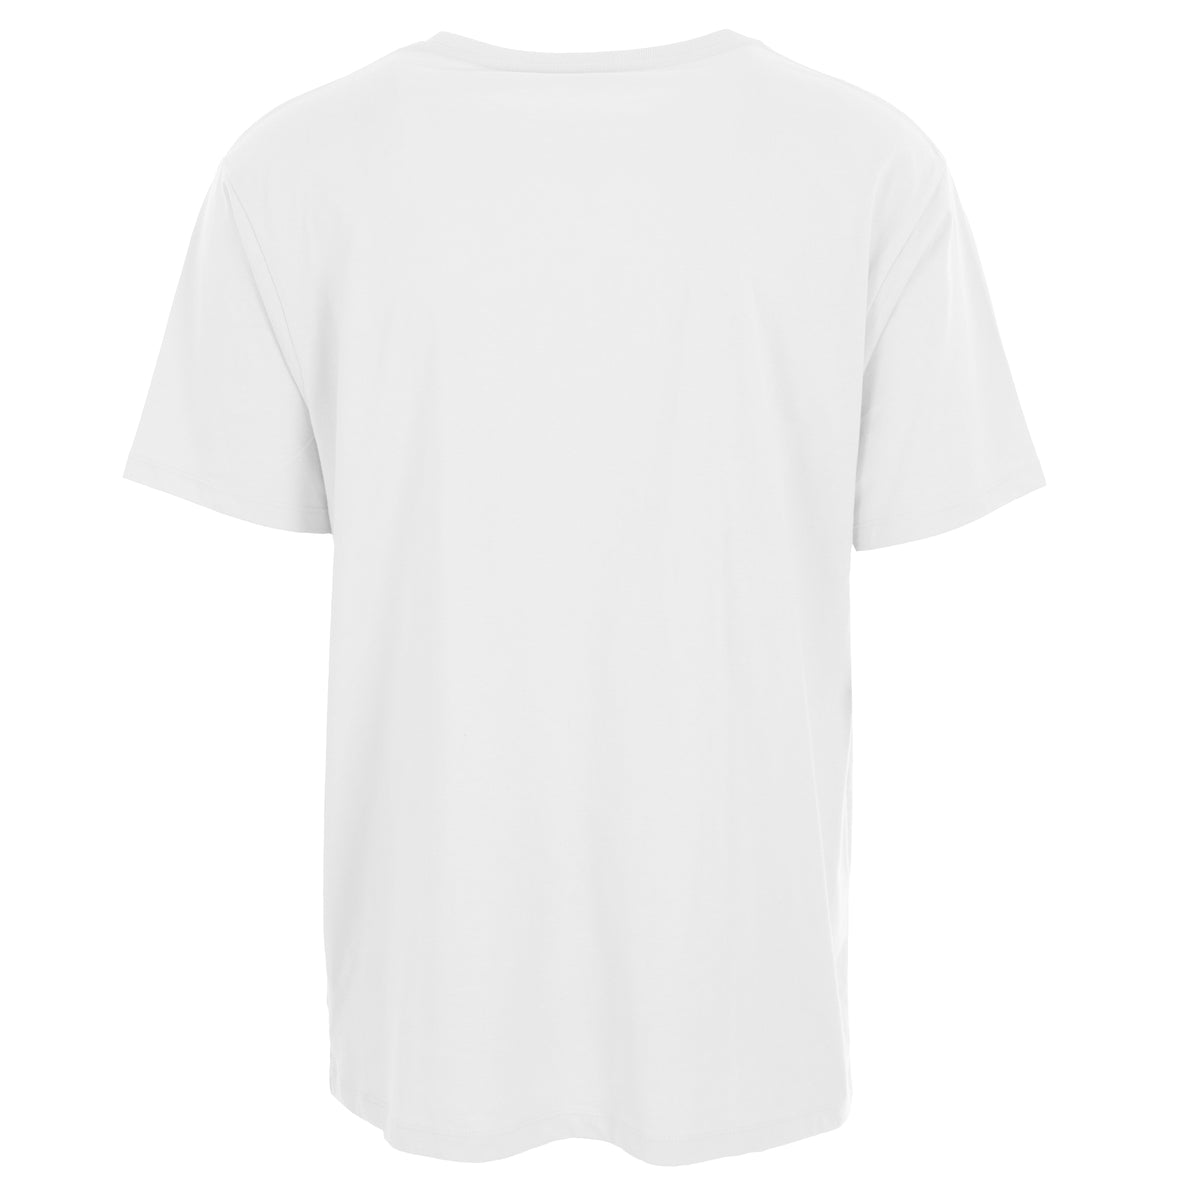 ARCTIC T SHIRT - WHITE/BLACK LADIES